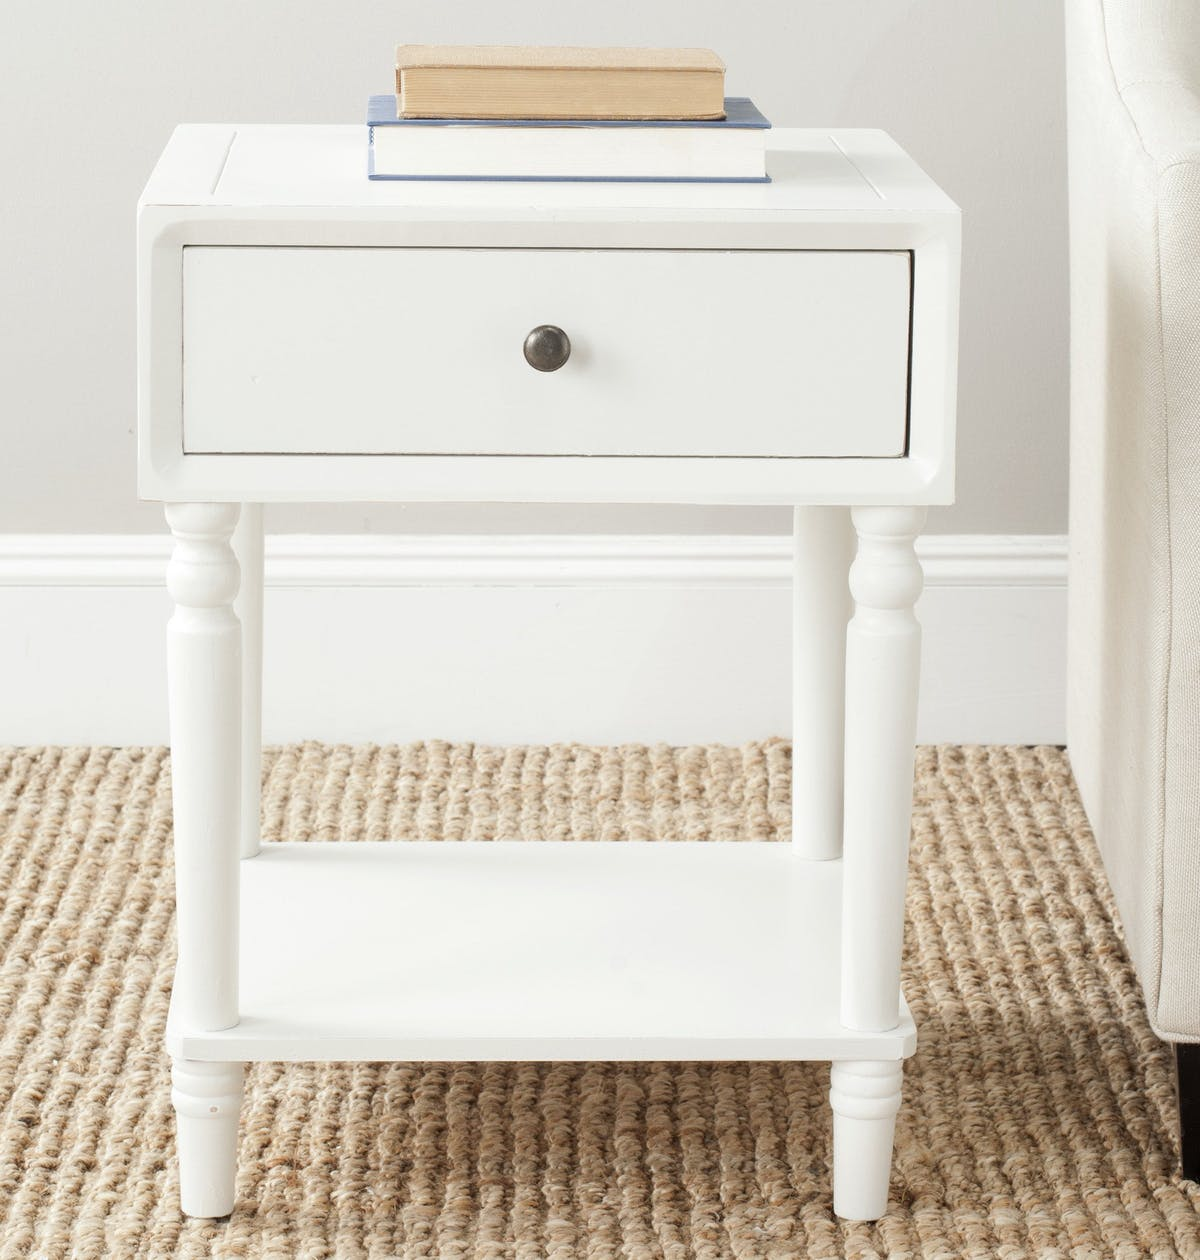 safavieh siobhan accent table with storage drawer modish room west elm scoop lamp rugs plastic folding side kitchen pulls retro bedroom furniture white linen tablecloth round high